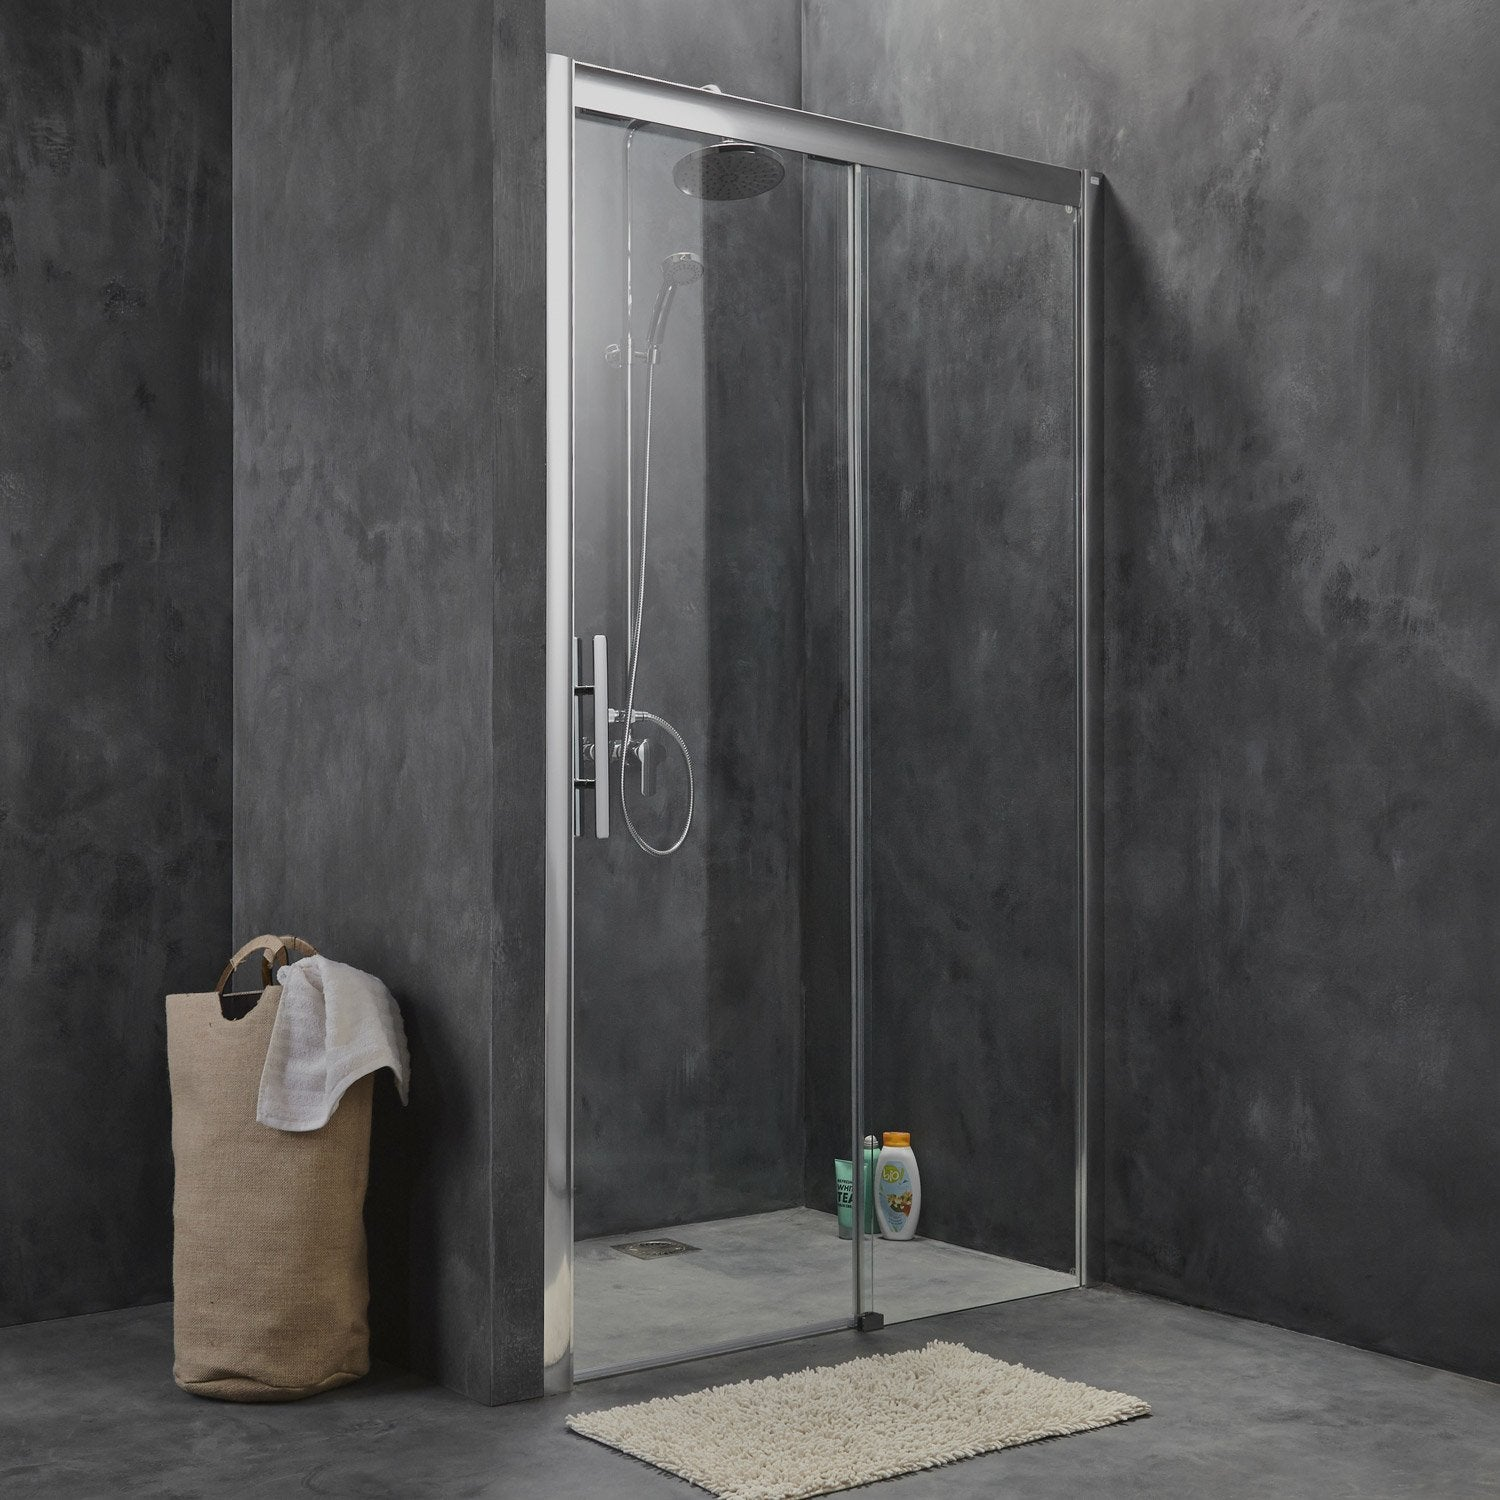 Porte de douche coulissante 120 cm transparent adena for Fartools rex 120 leroy merlin